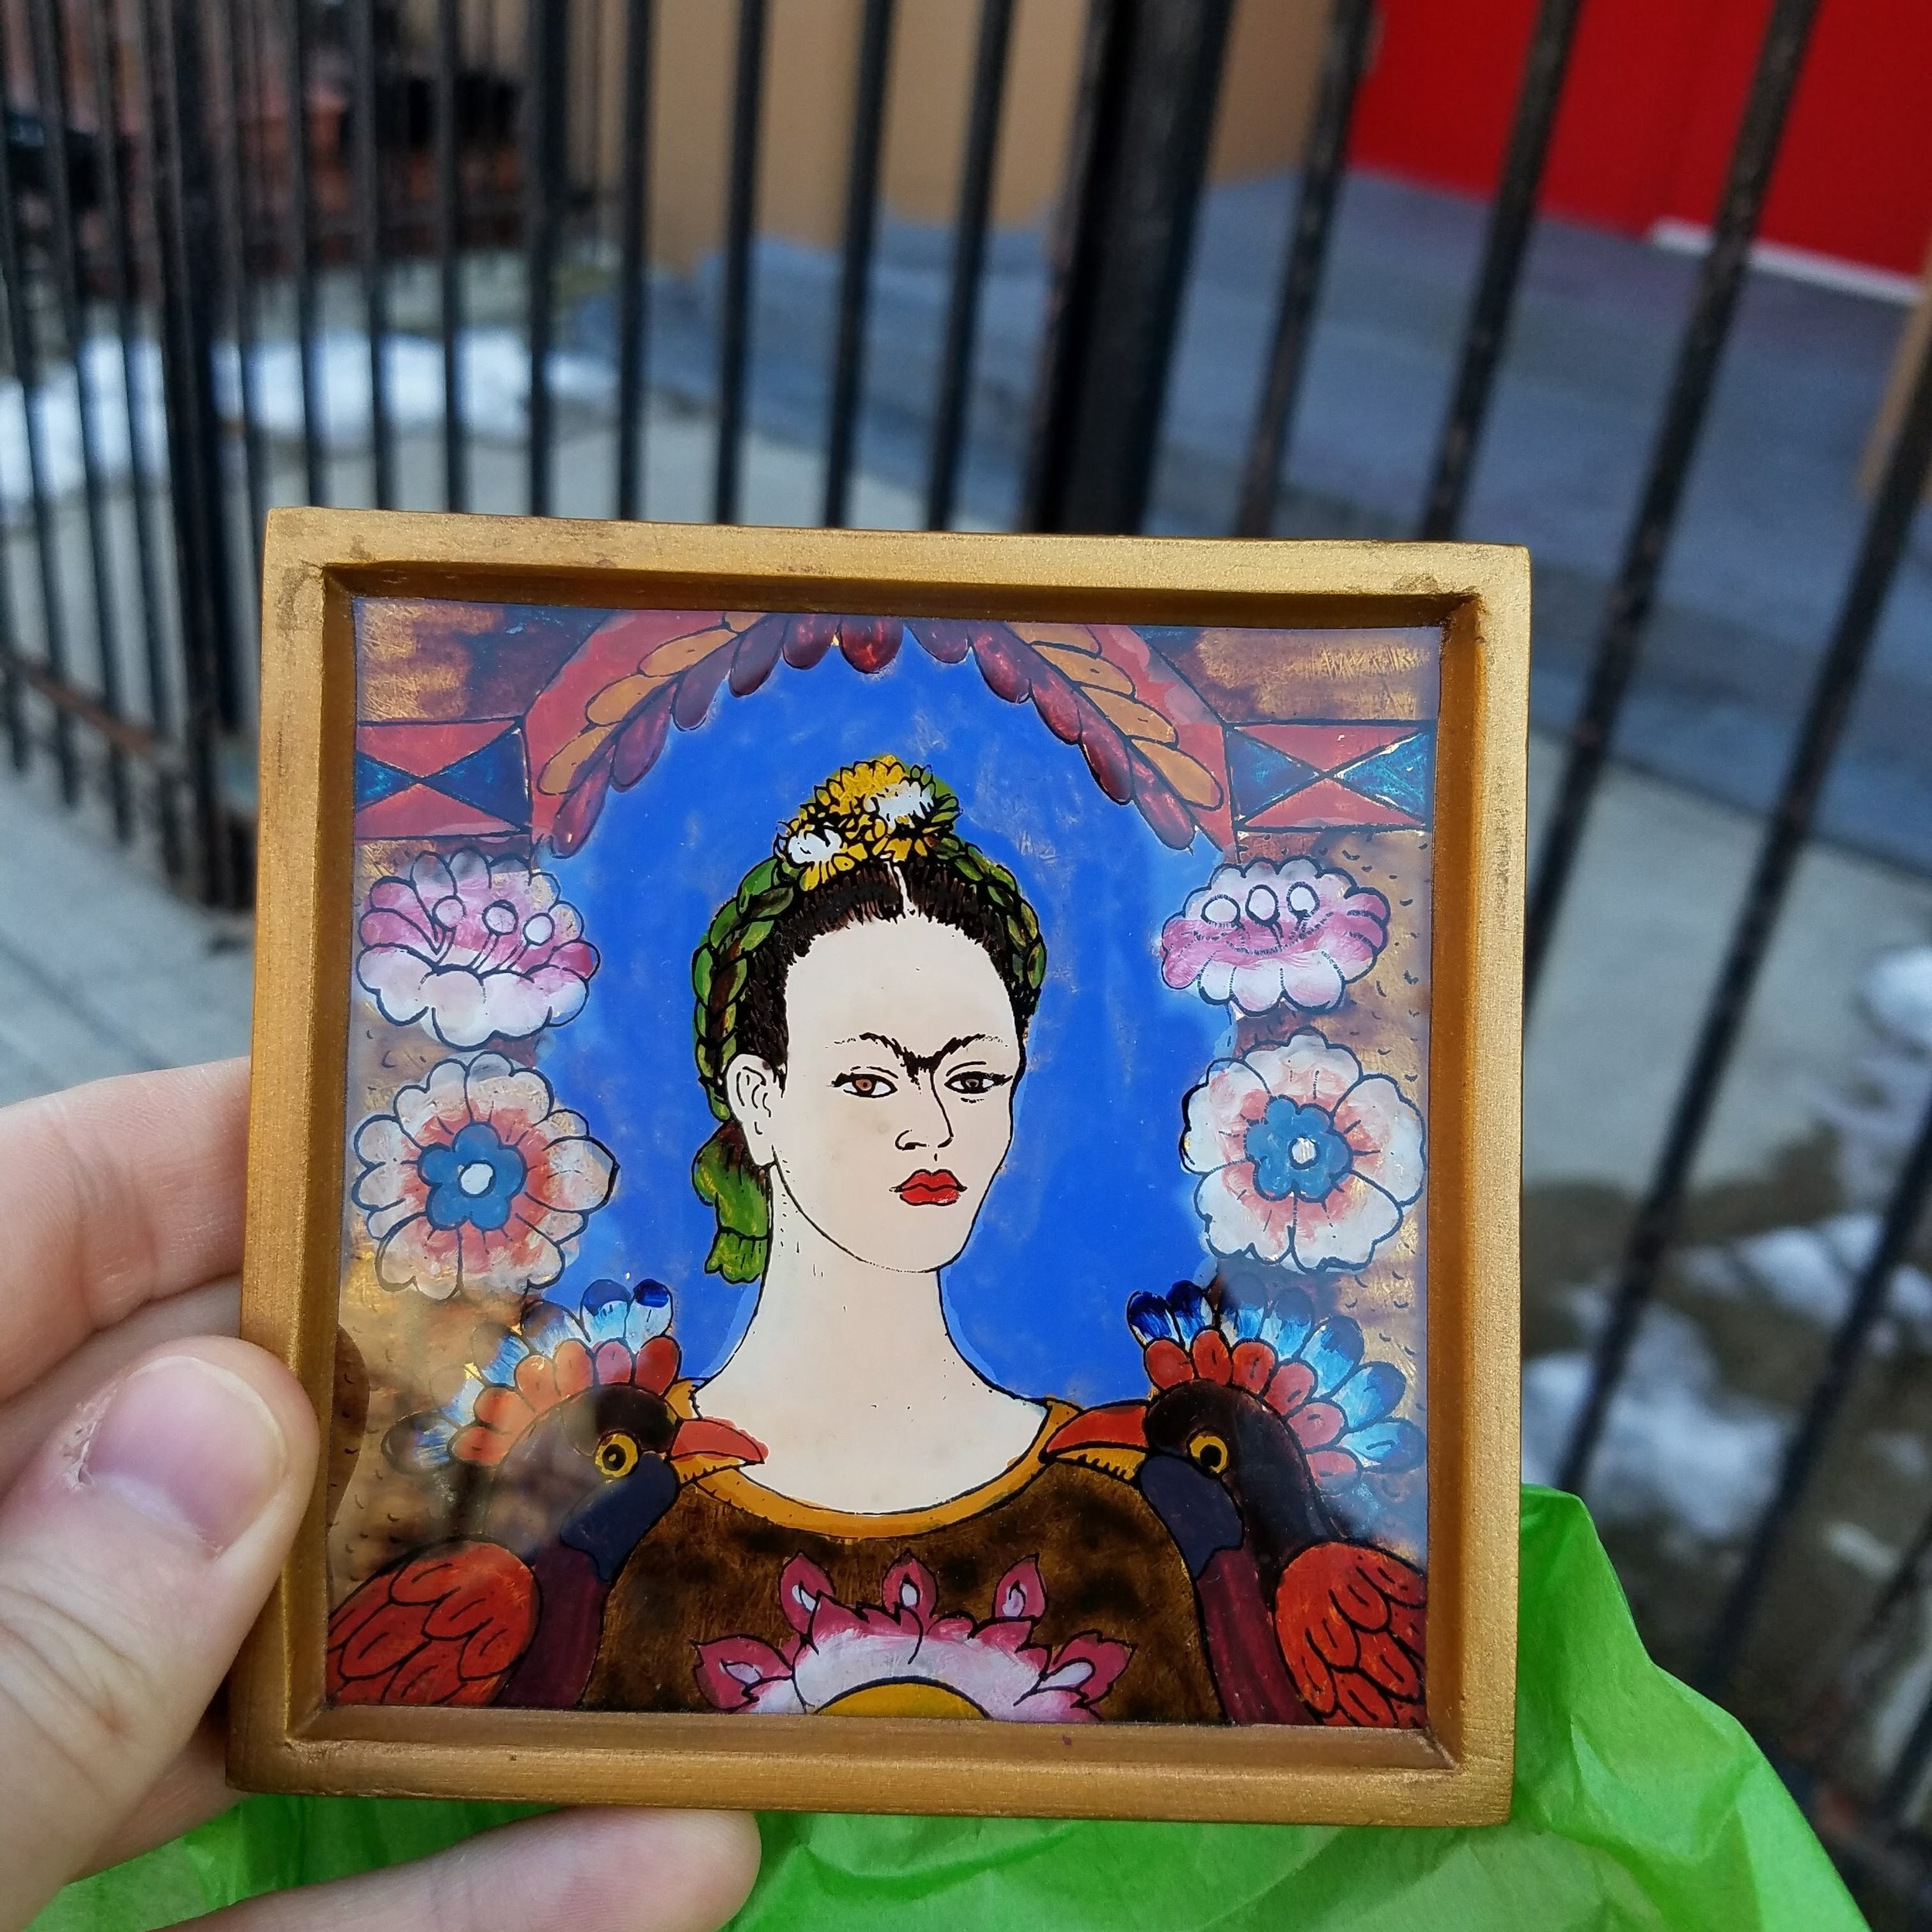 I was so excited about this unique find - made in Peru. Frida Kahlo! Gifting this to a special someone. Things you wouldn't find at Target.